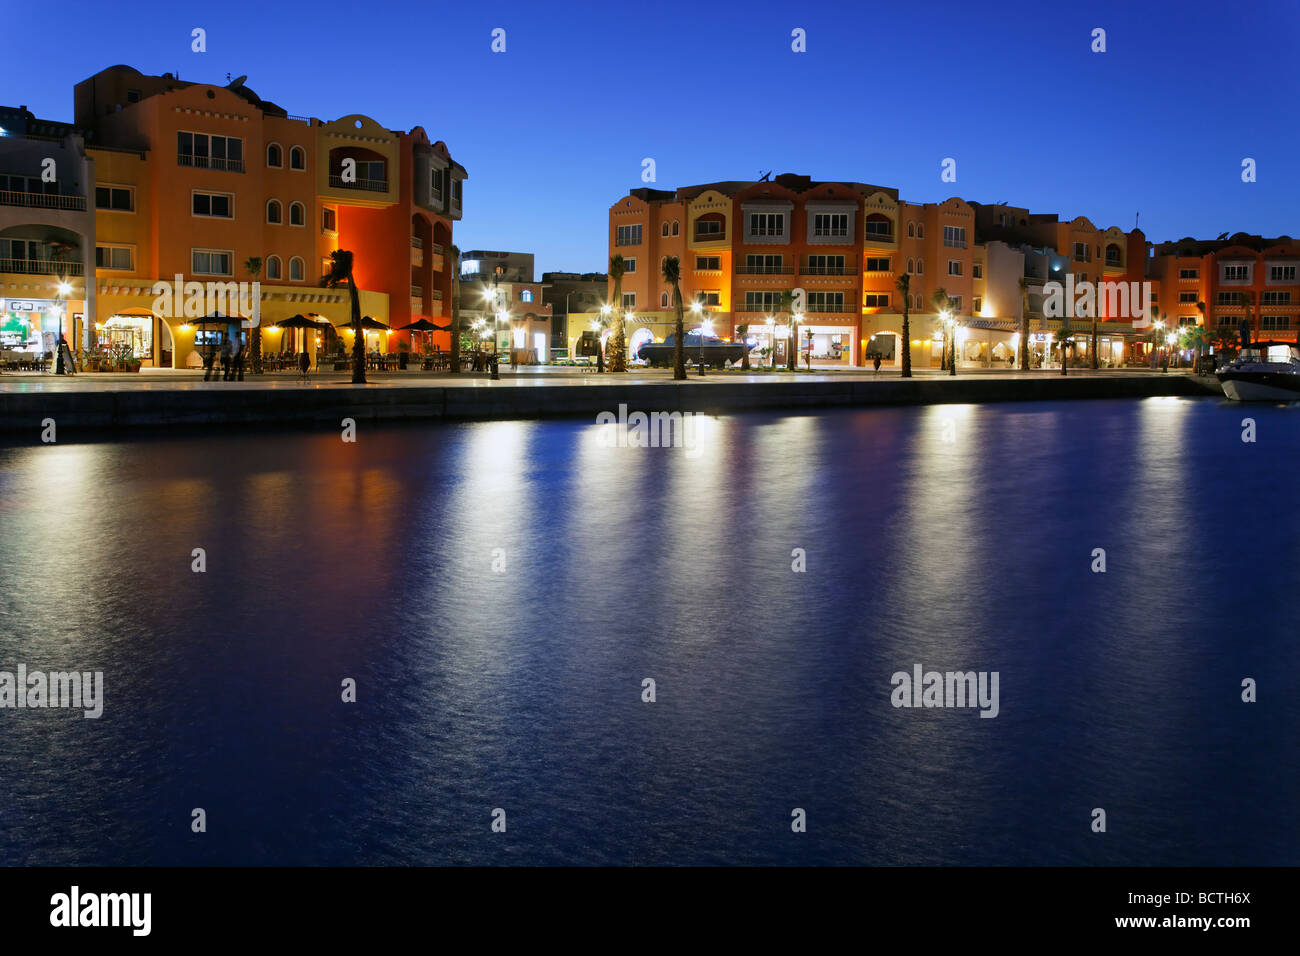 Illuminated houses with restaurants at marina, Hurghada, Egypt, Red Sea, Africa - Stock Image